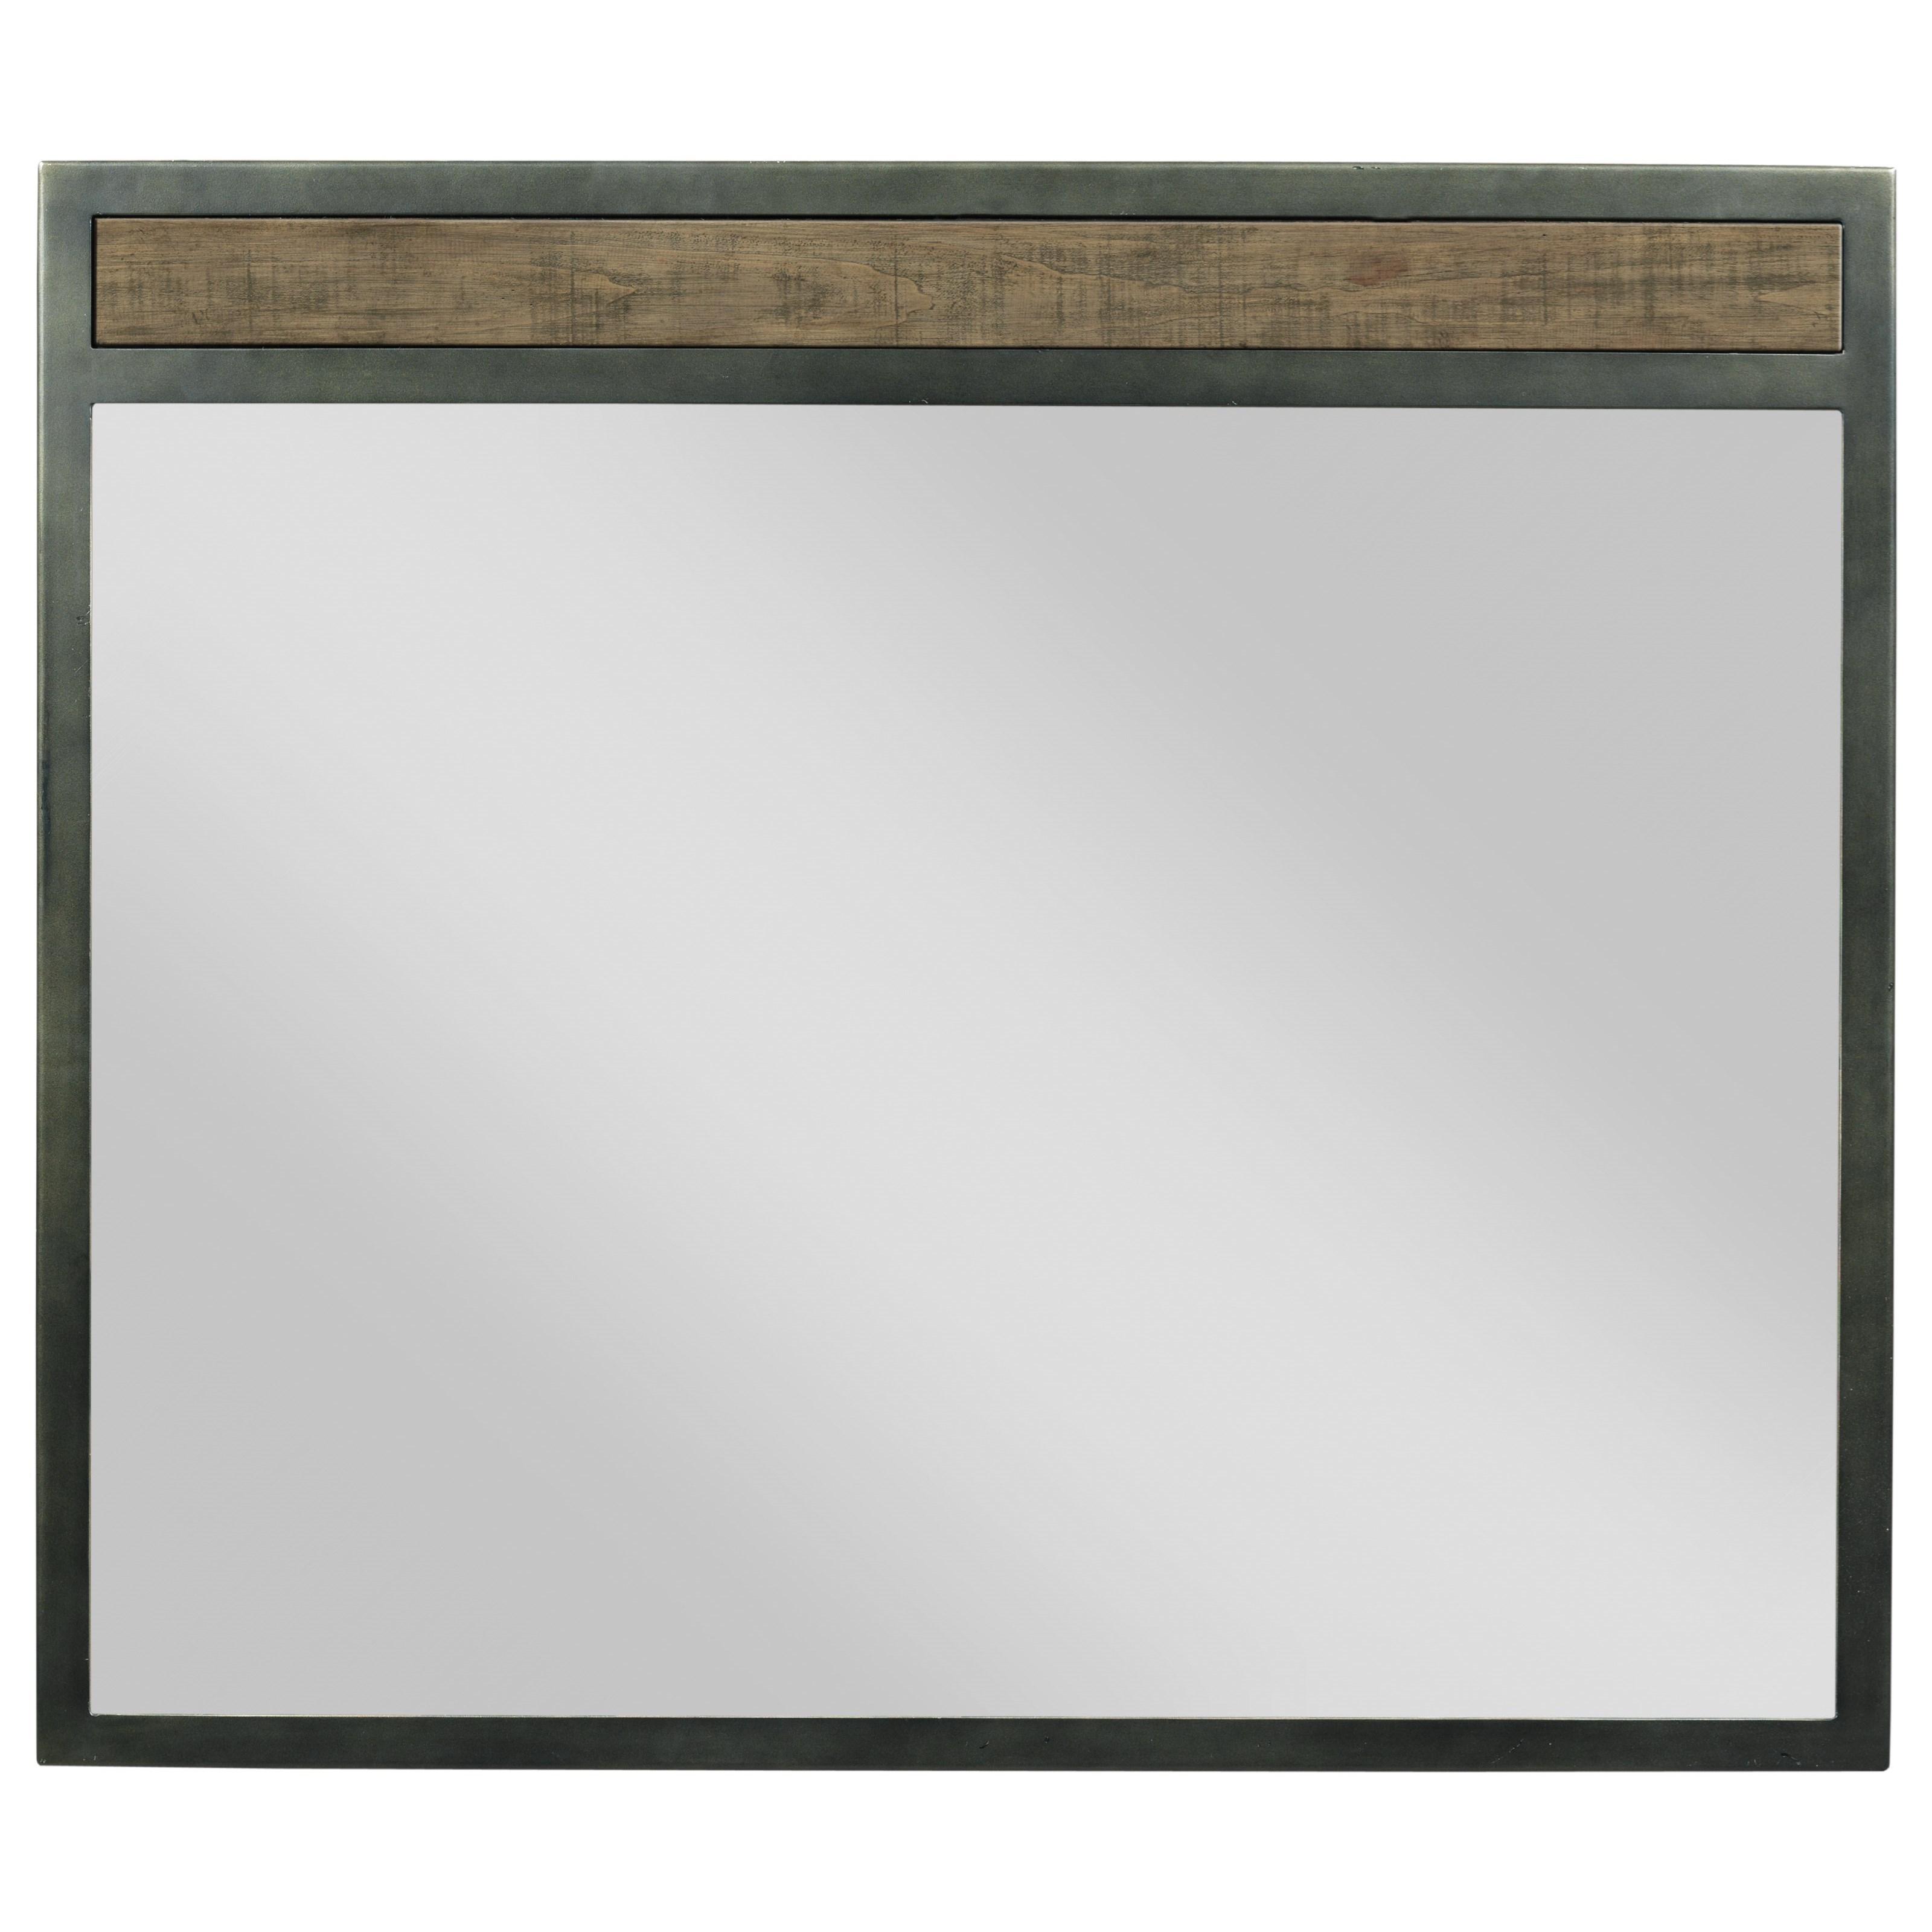 Plank Road Shelley Mirror                               by Kincaid Furniture at Northeast Factory Direct